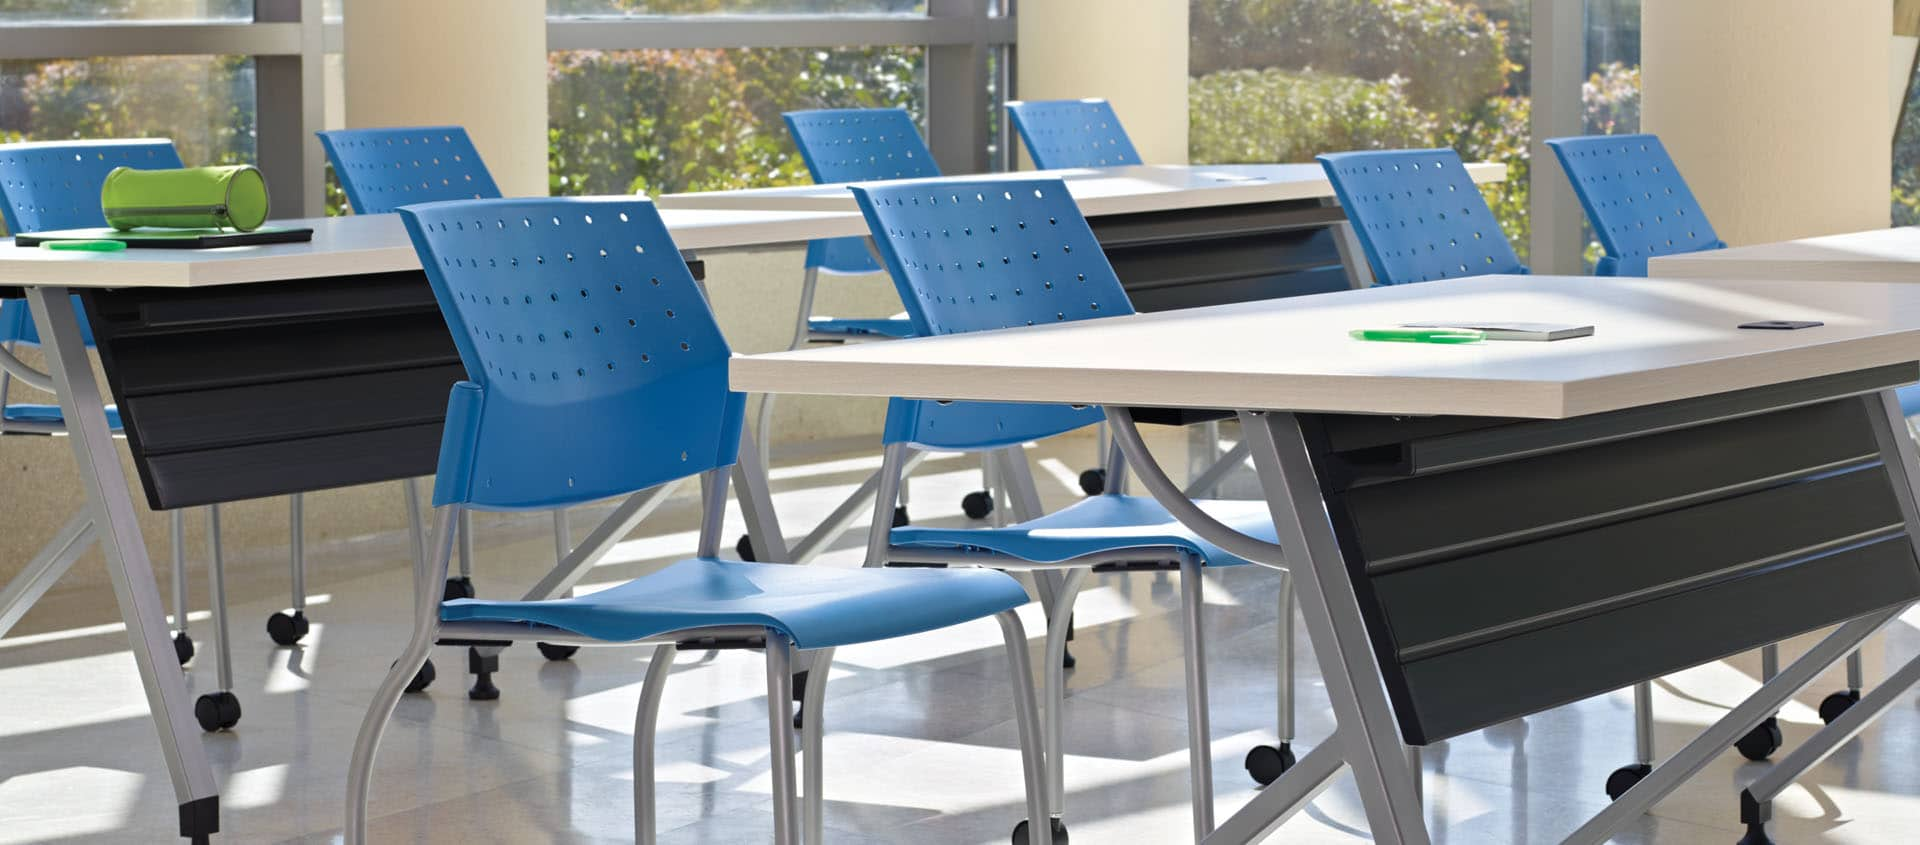 Blue Sonic Stacking Chair In Classroom Training Setting